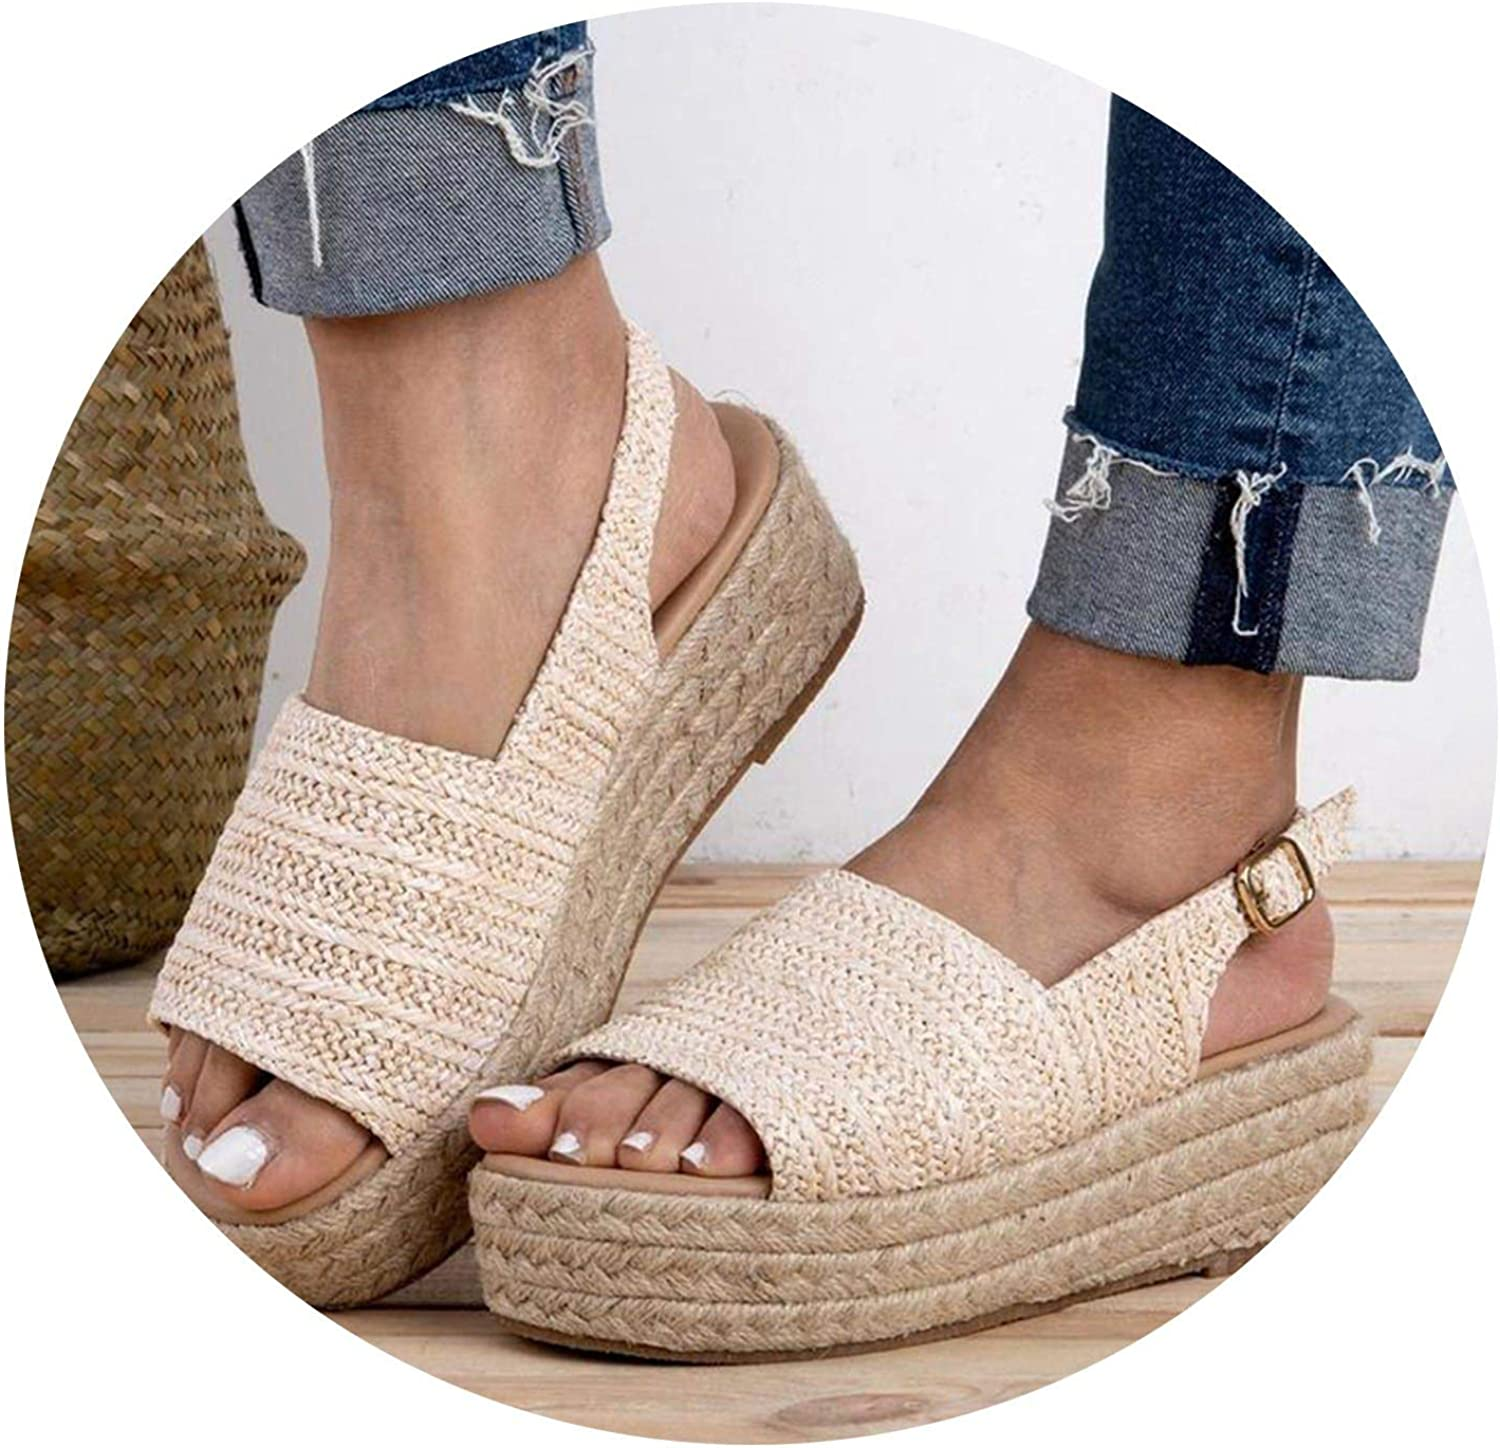 Monica's house Fashion Summer Women Sandals Female Beach shoes Wedge shoes High Heel Comfortable Platform Sandals Plus Size